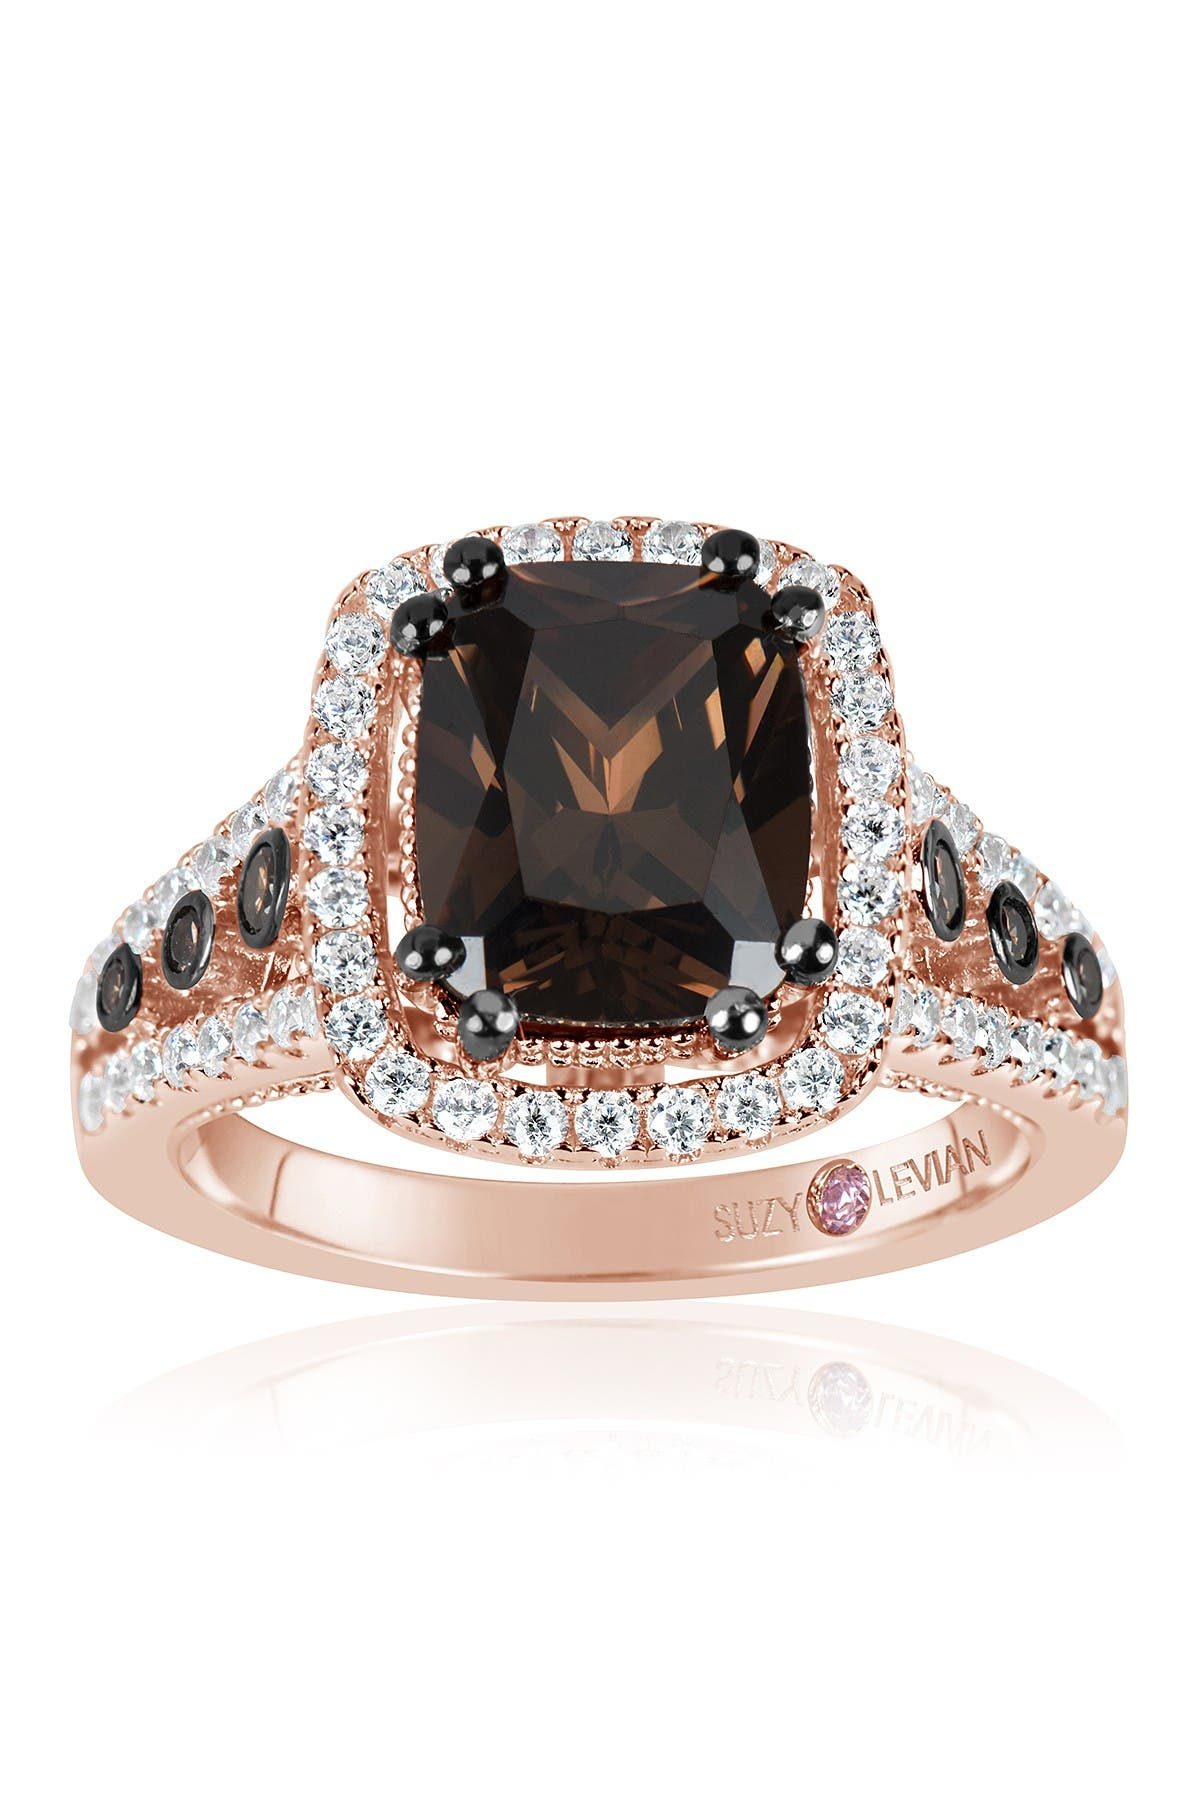 Image of Suzy Levian Two-Tone Chocolate & White CZ Ring